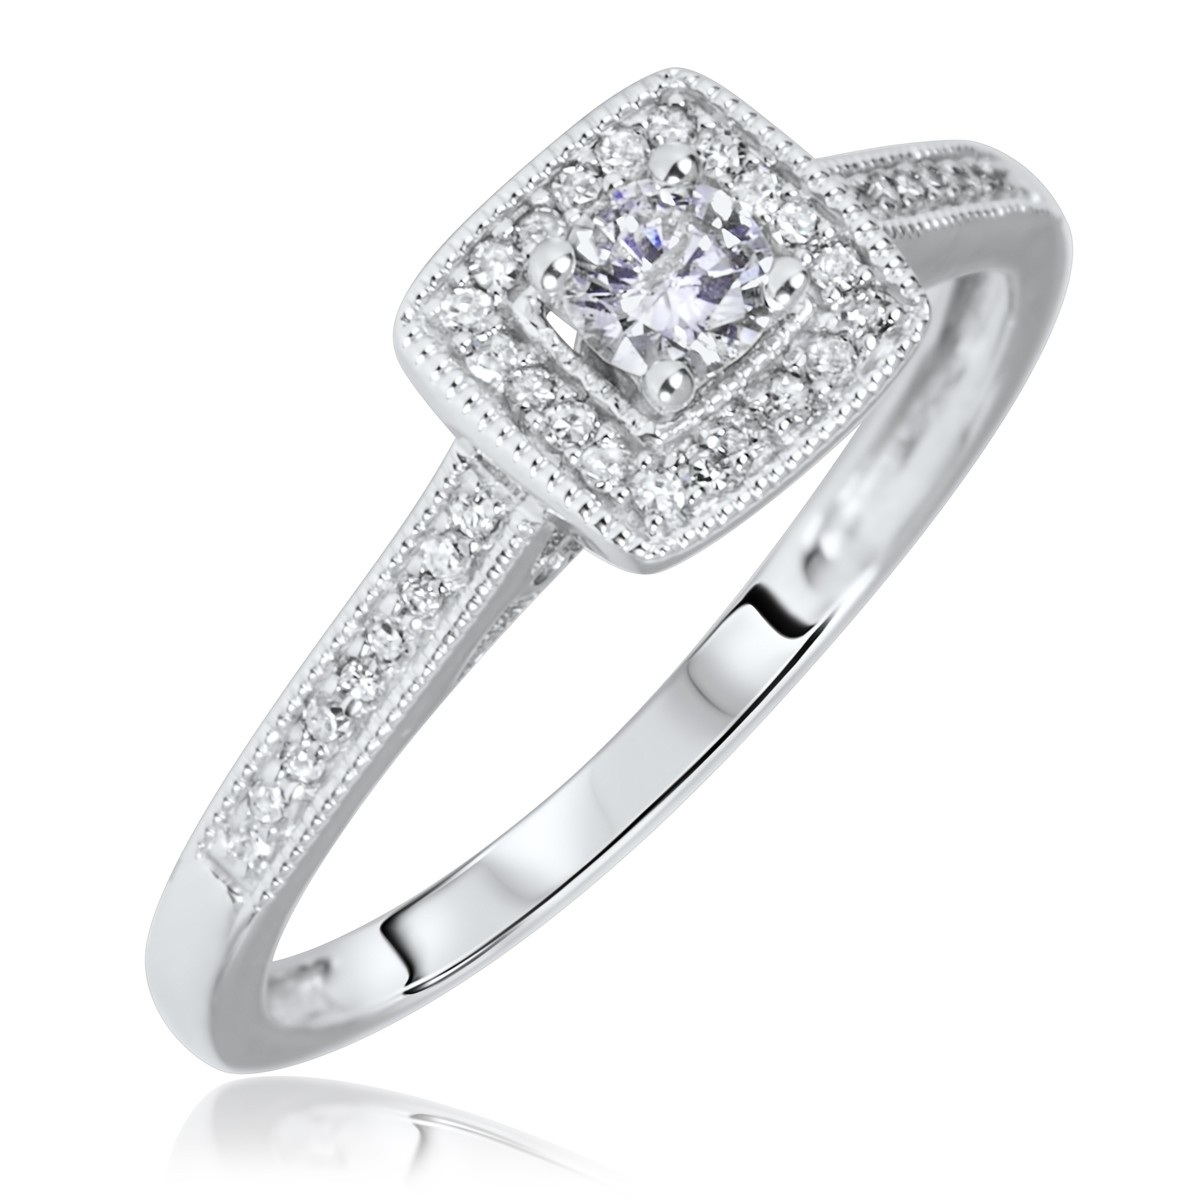 1/5 Carat T.W. Round Cut Diamond Ladies Engagement Ring 14K White Gold